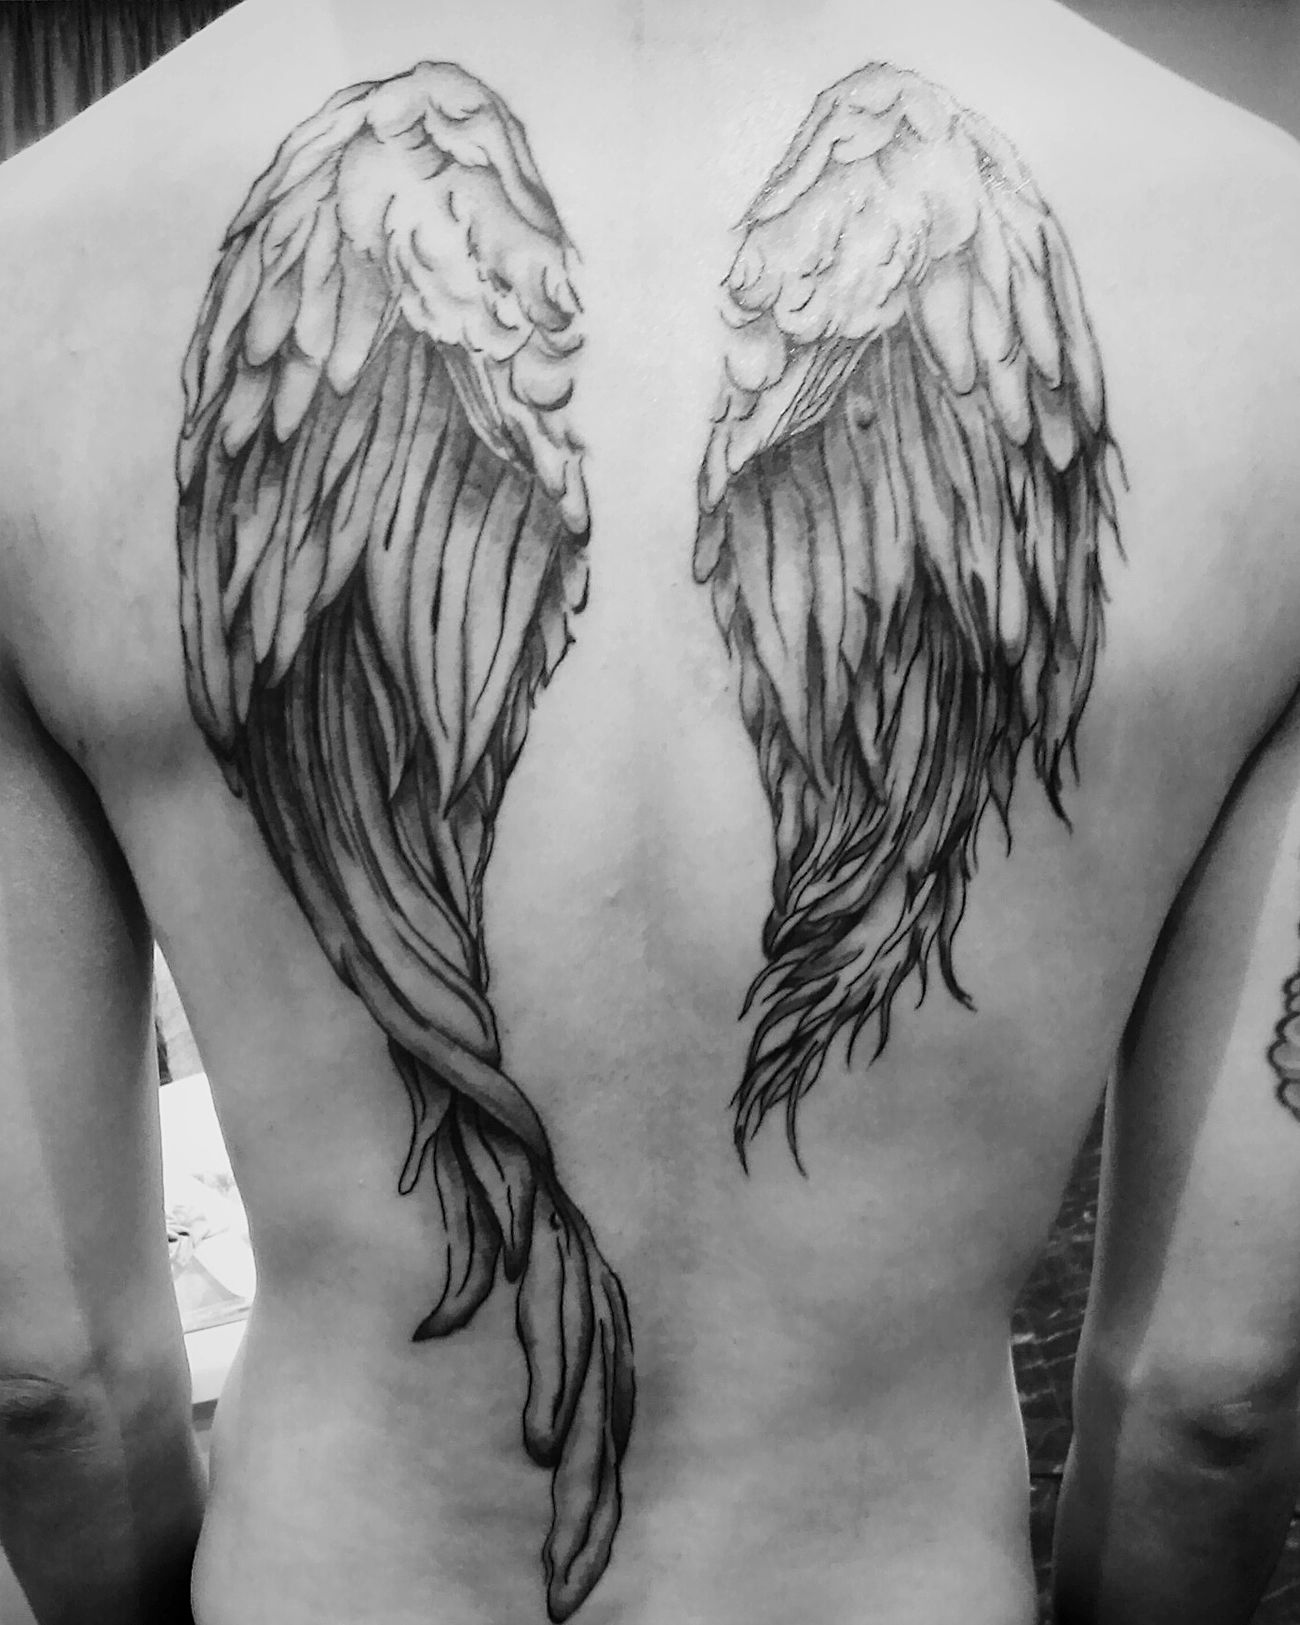 Tattoo In Japan Tattoos Drawing Painting Inked Japan - Takamatsu Takamatsu-shi Wings Wingman My Work